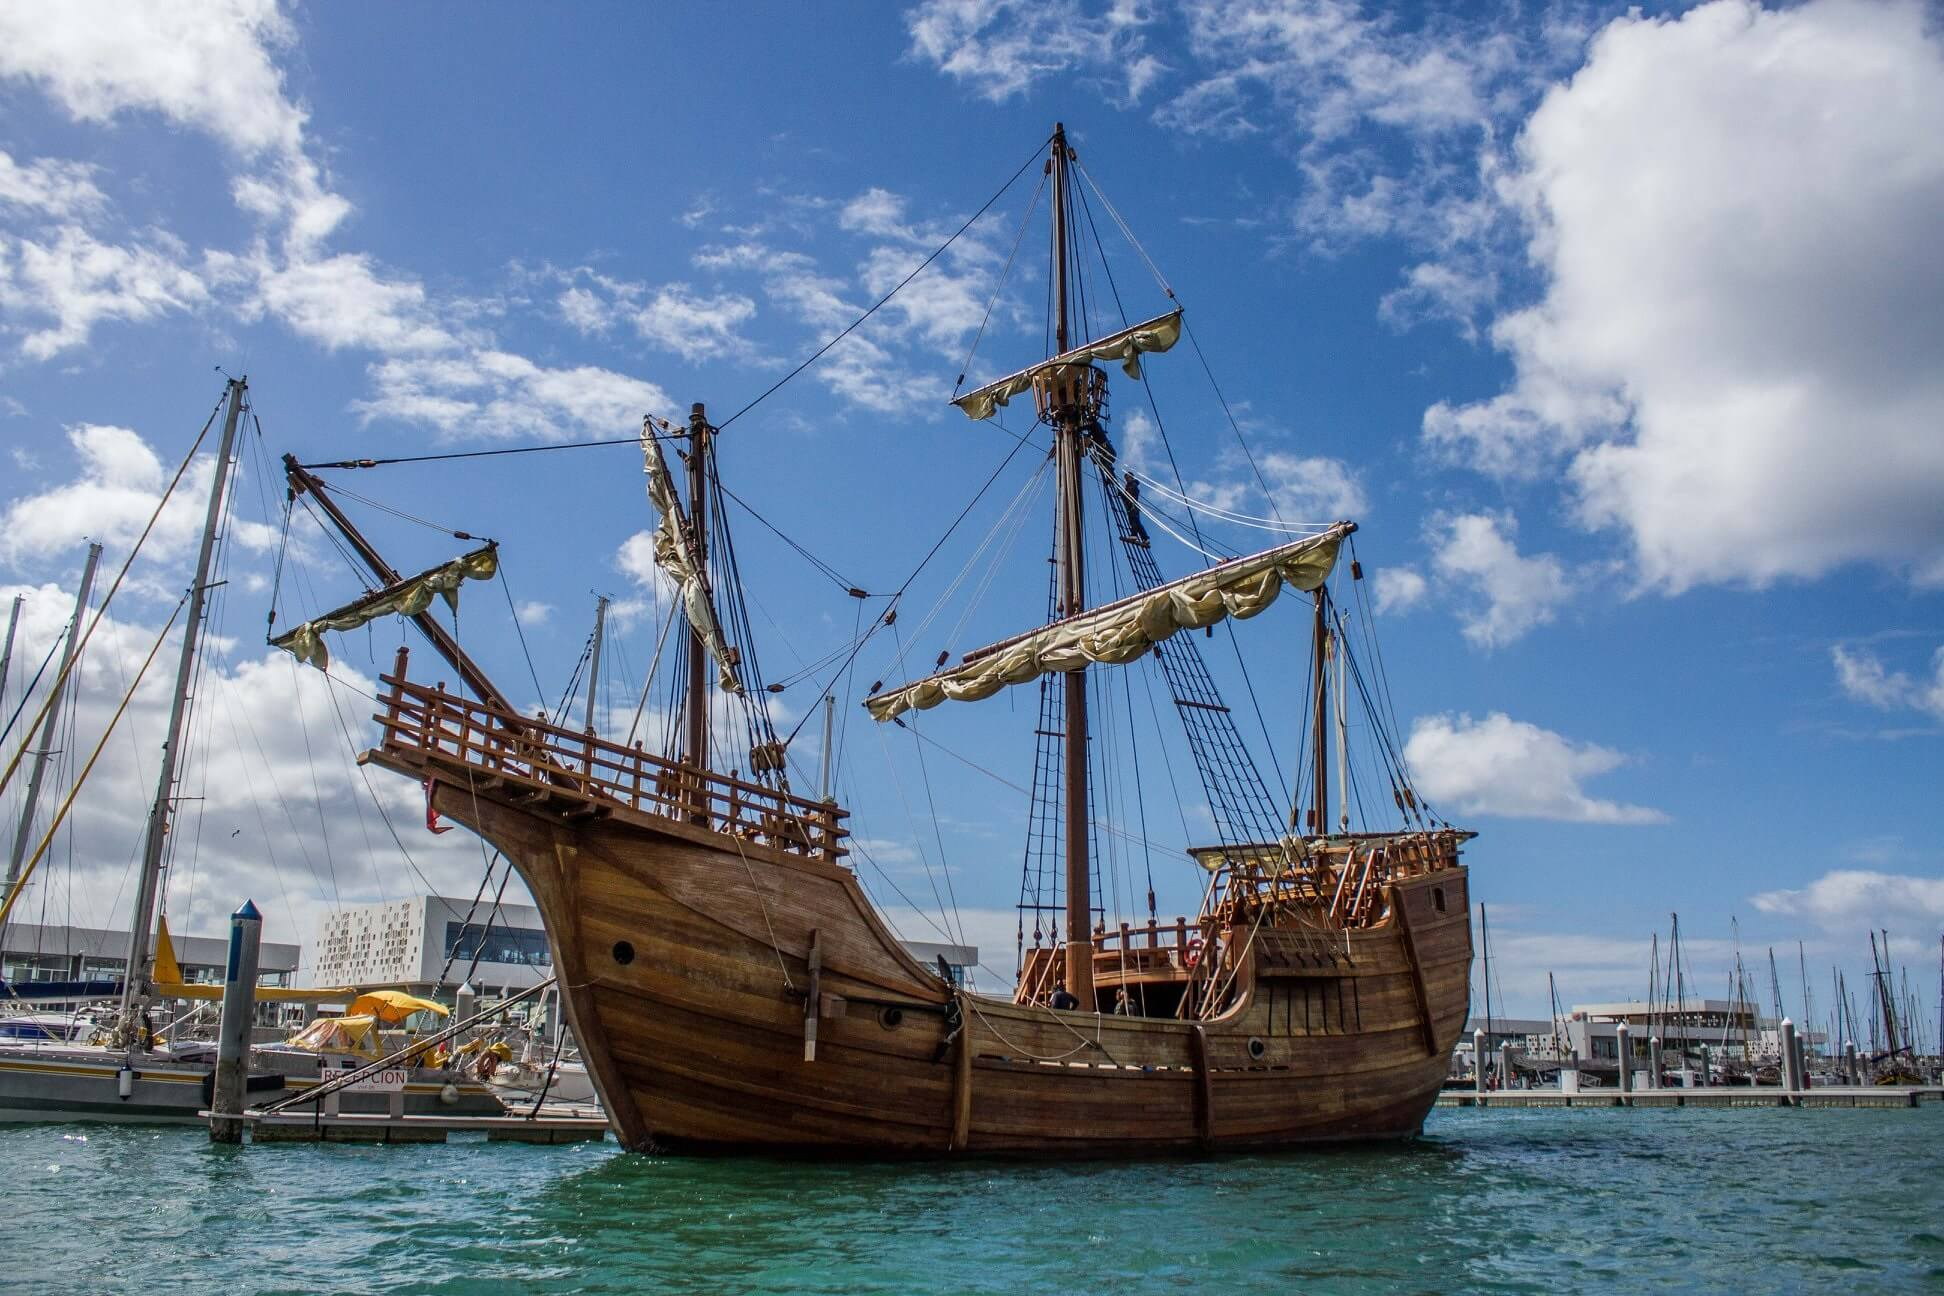 Christopher Columbus' replica ship to sail back to America for Tall Ships Erie 2019